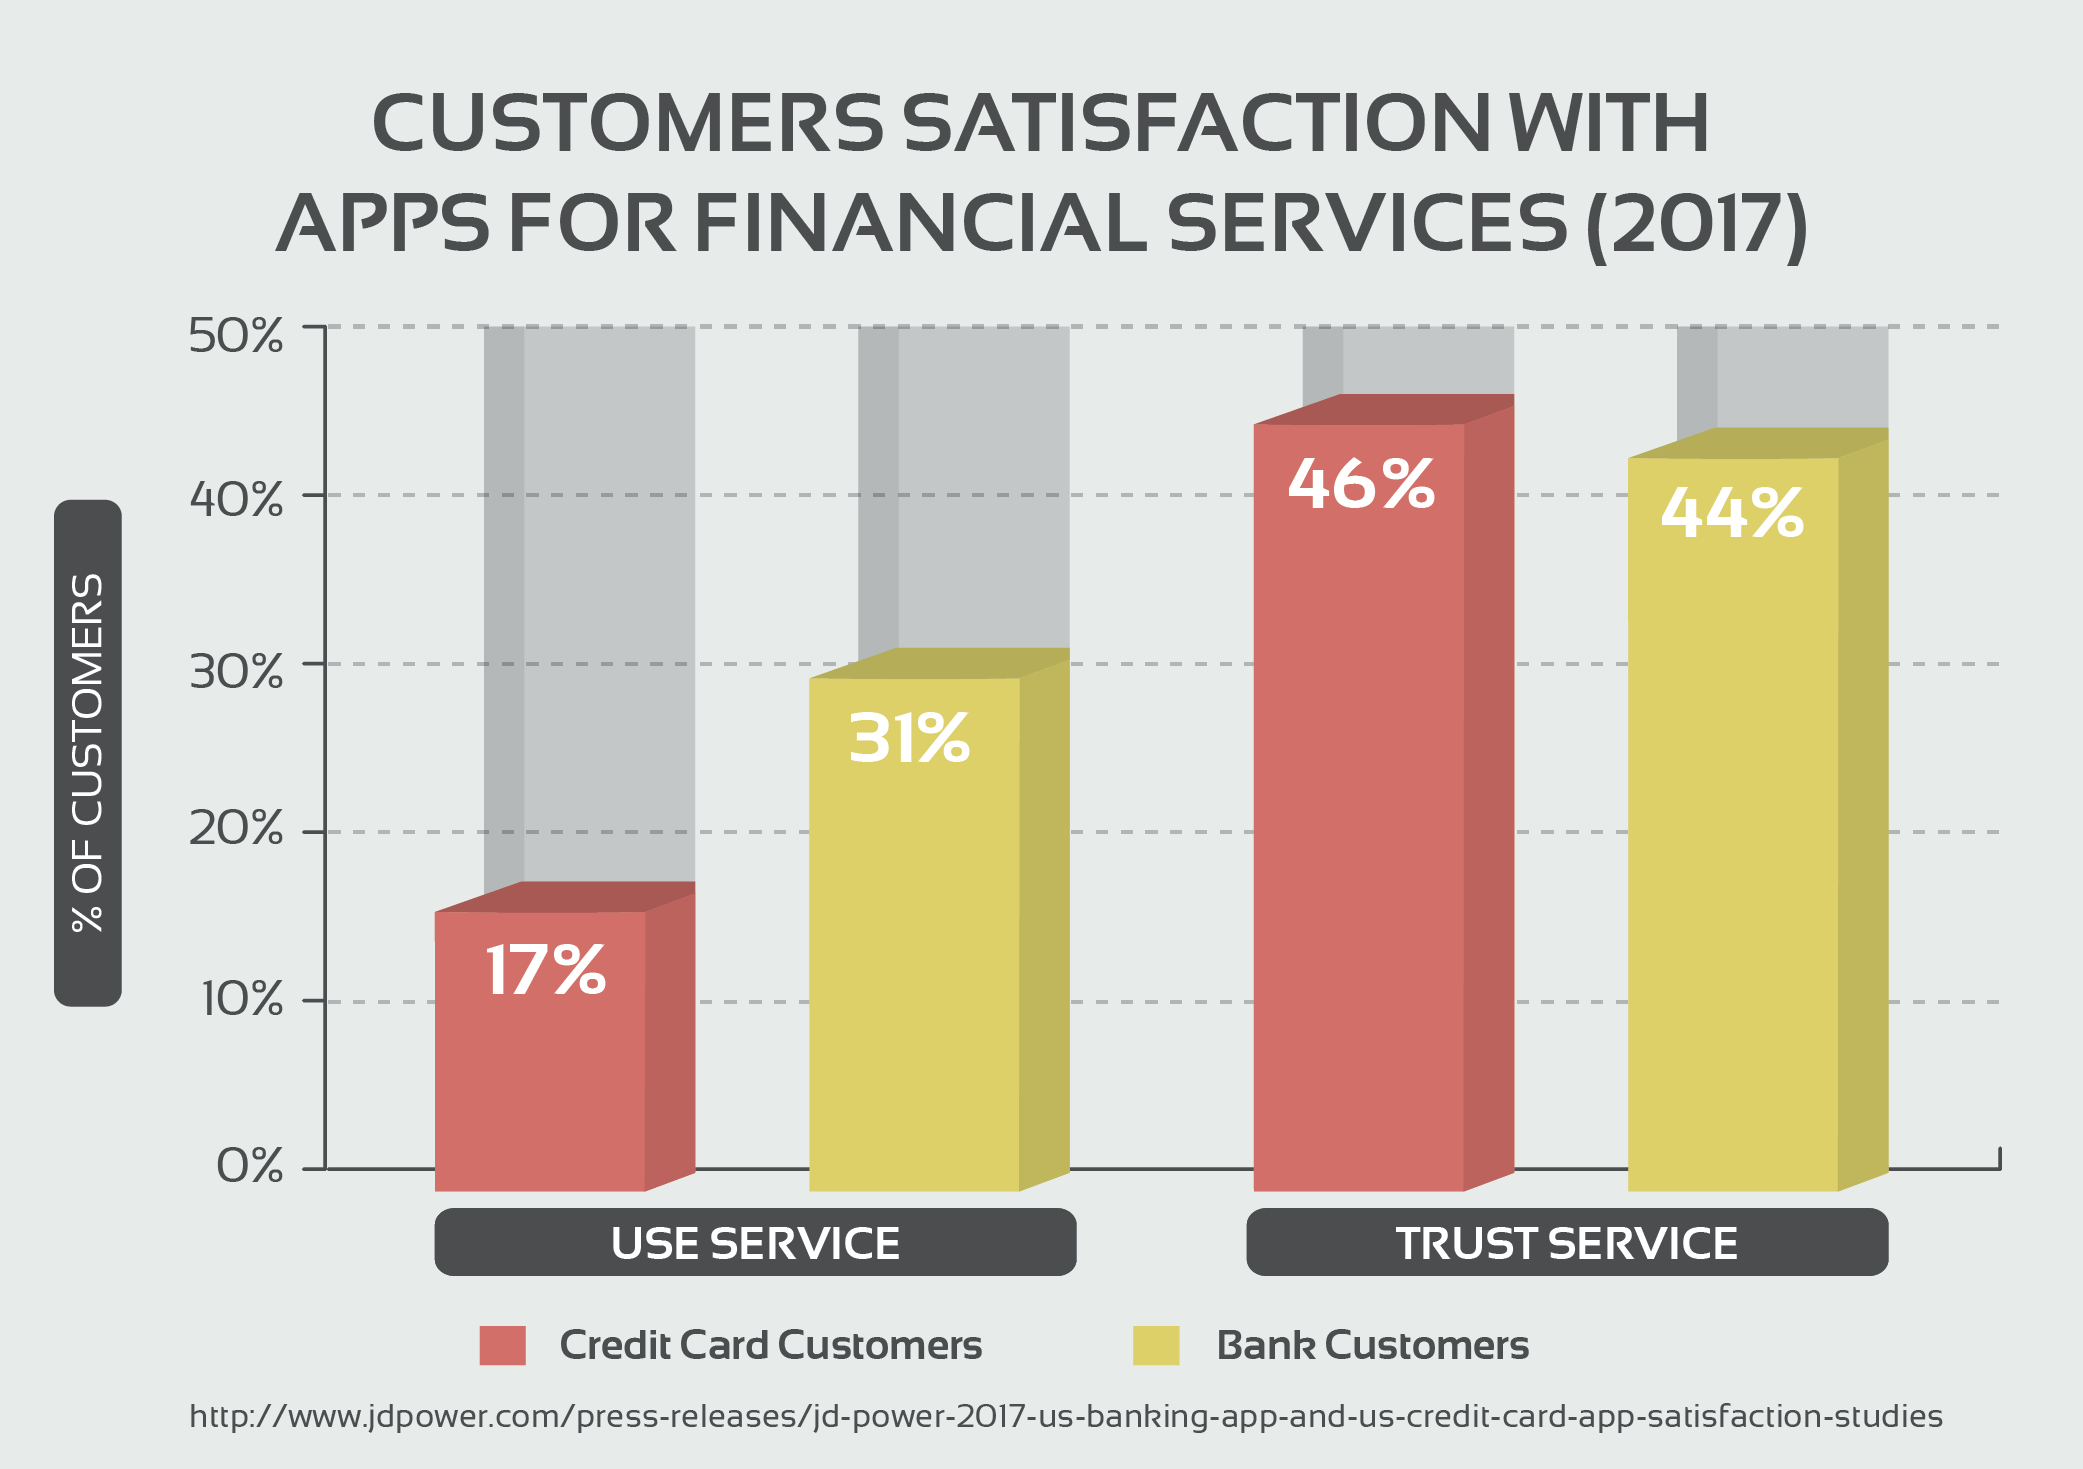 Customers Satisfaction With Apps for Financial Services (2017)